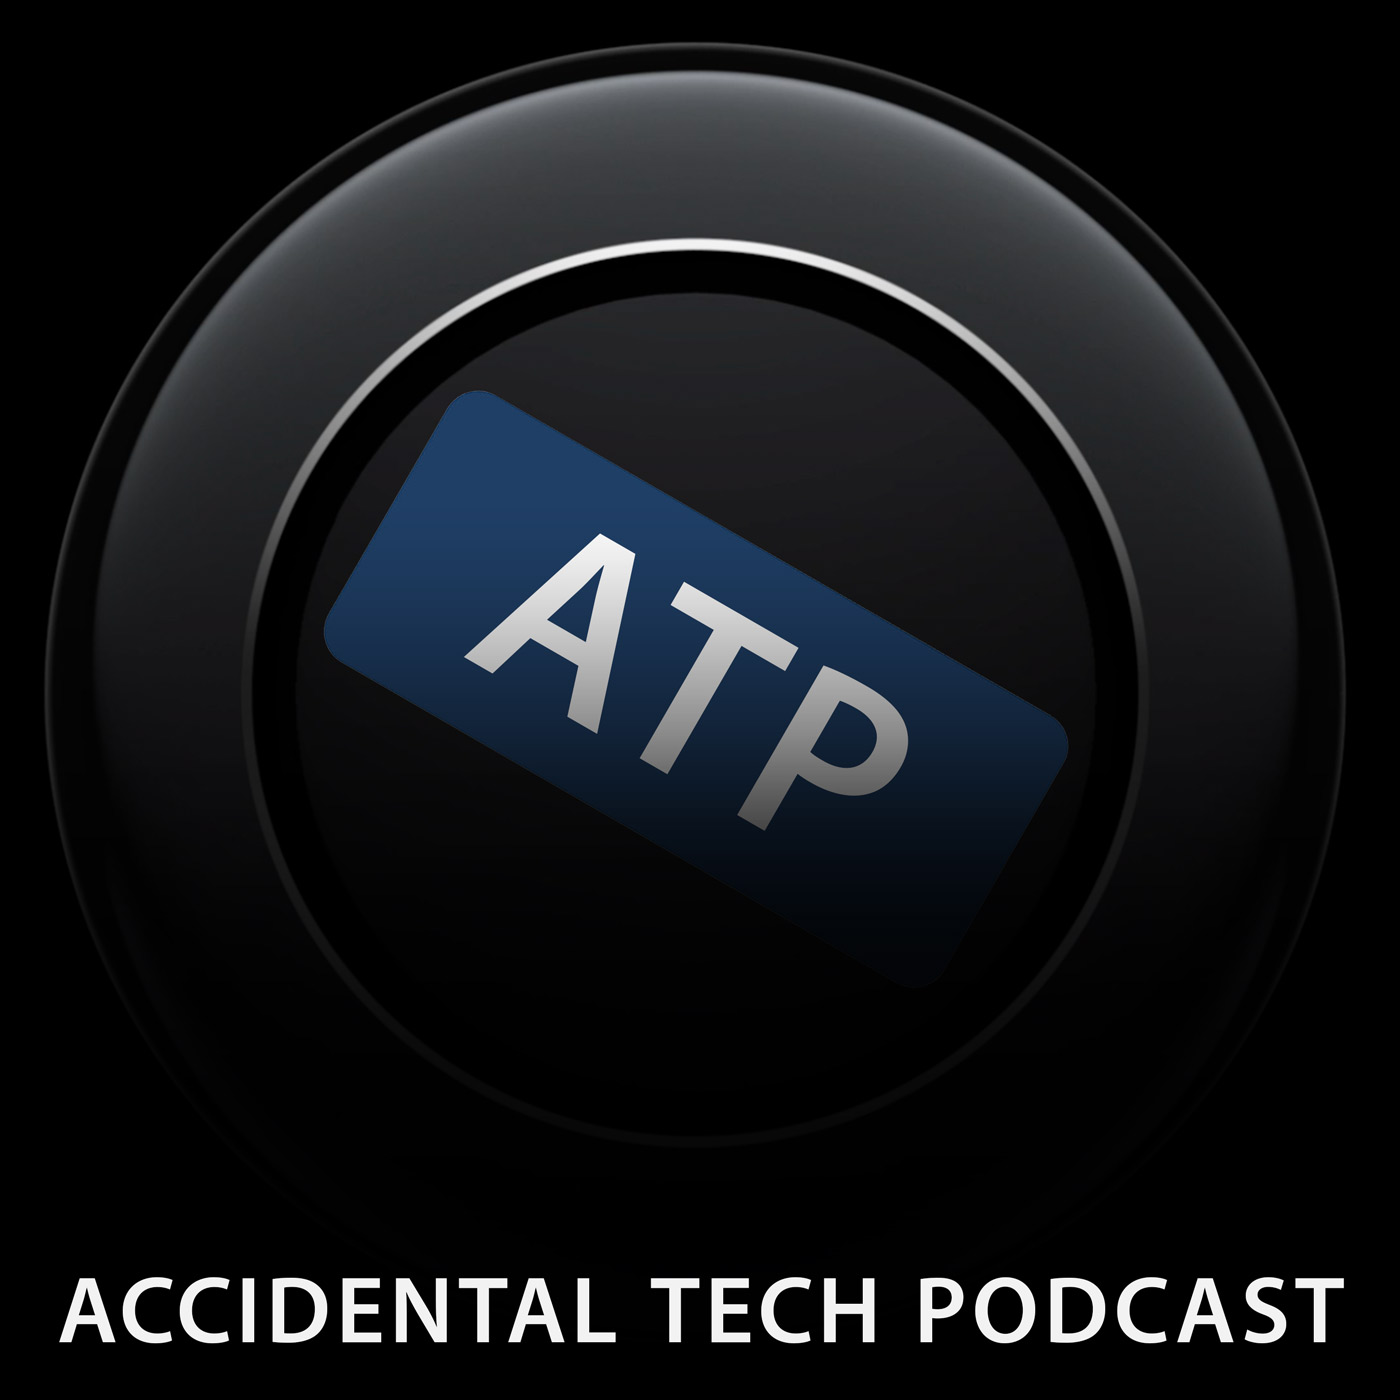 Accidental tech podcast logo